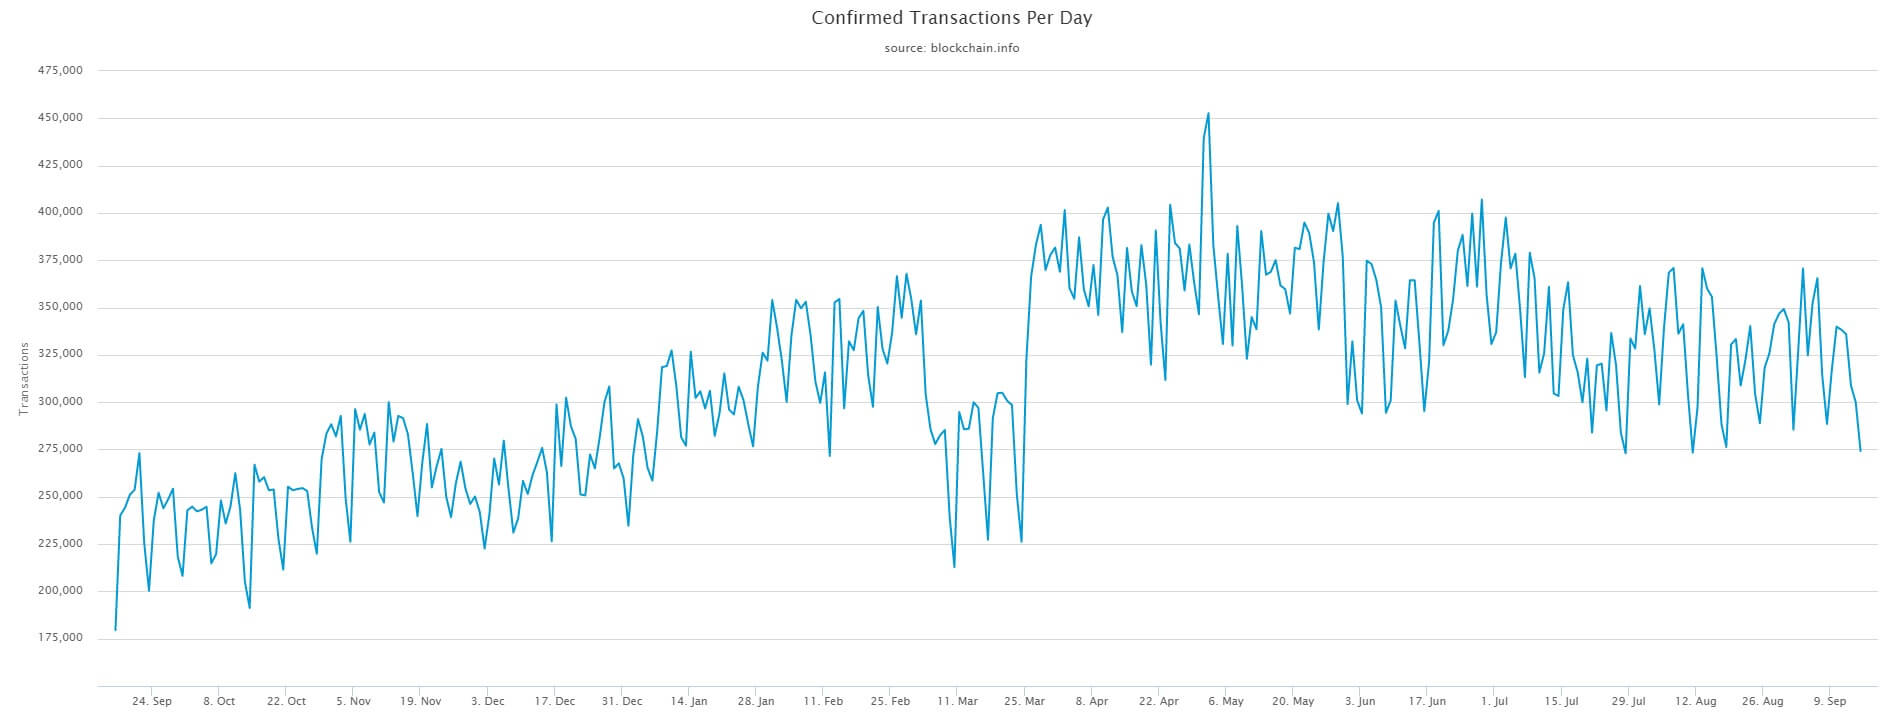 Total number of daily transactions on the Bitcoin network increased, indicating rise in cryptocurrency adoption